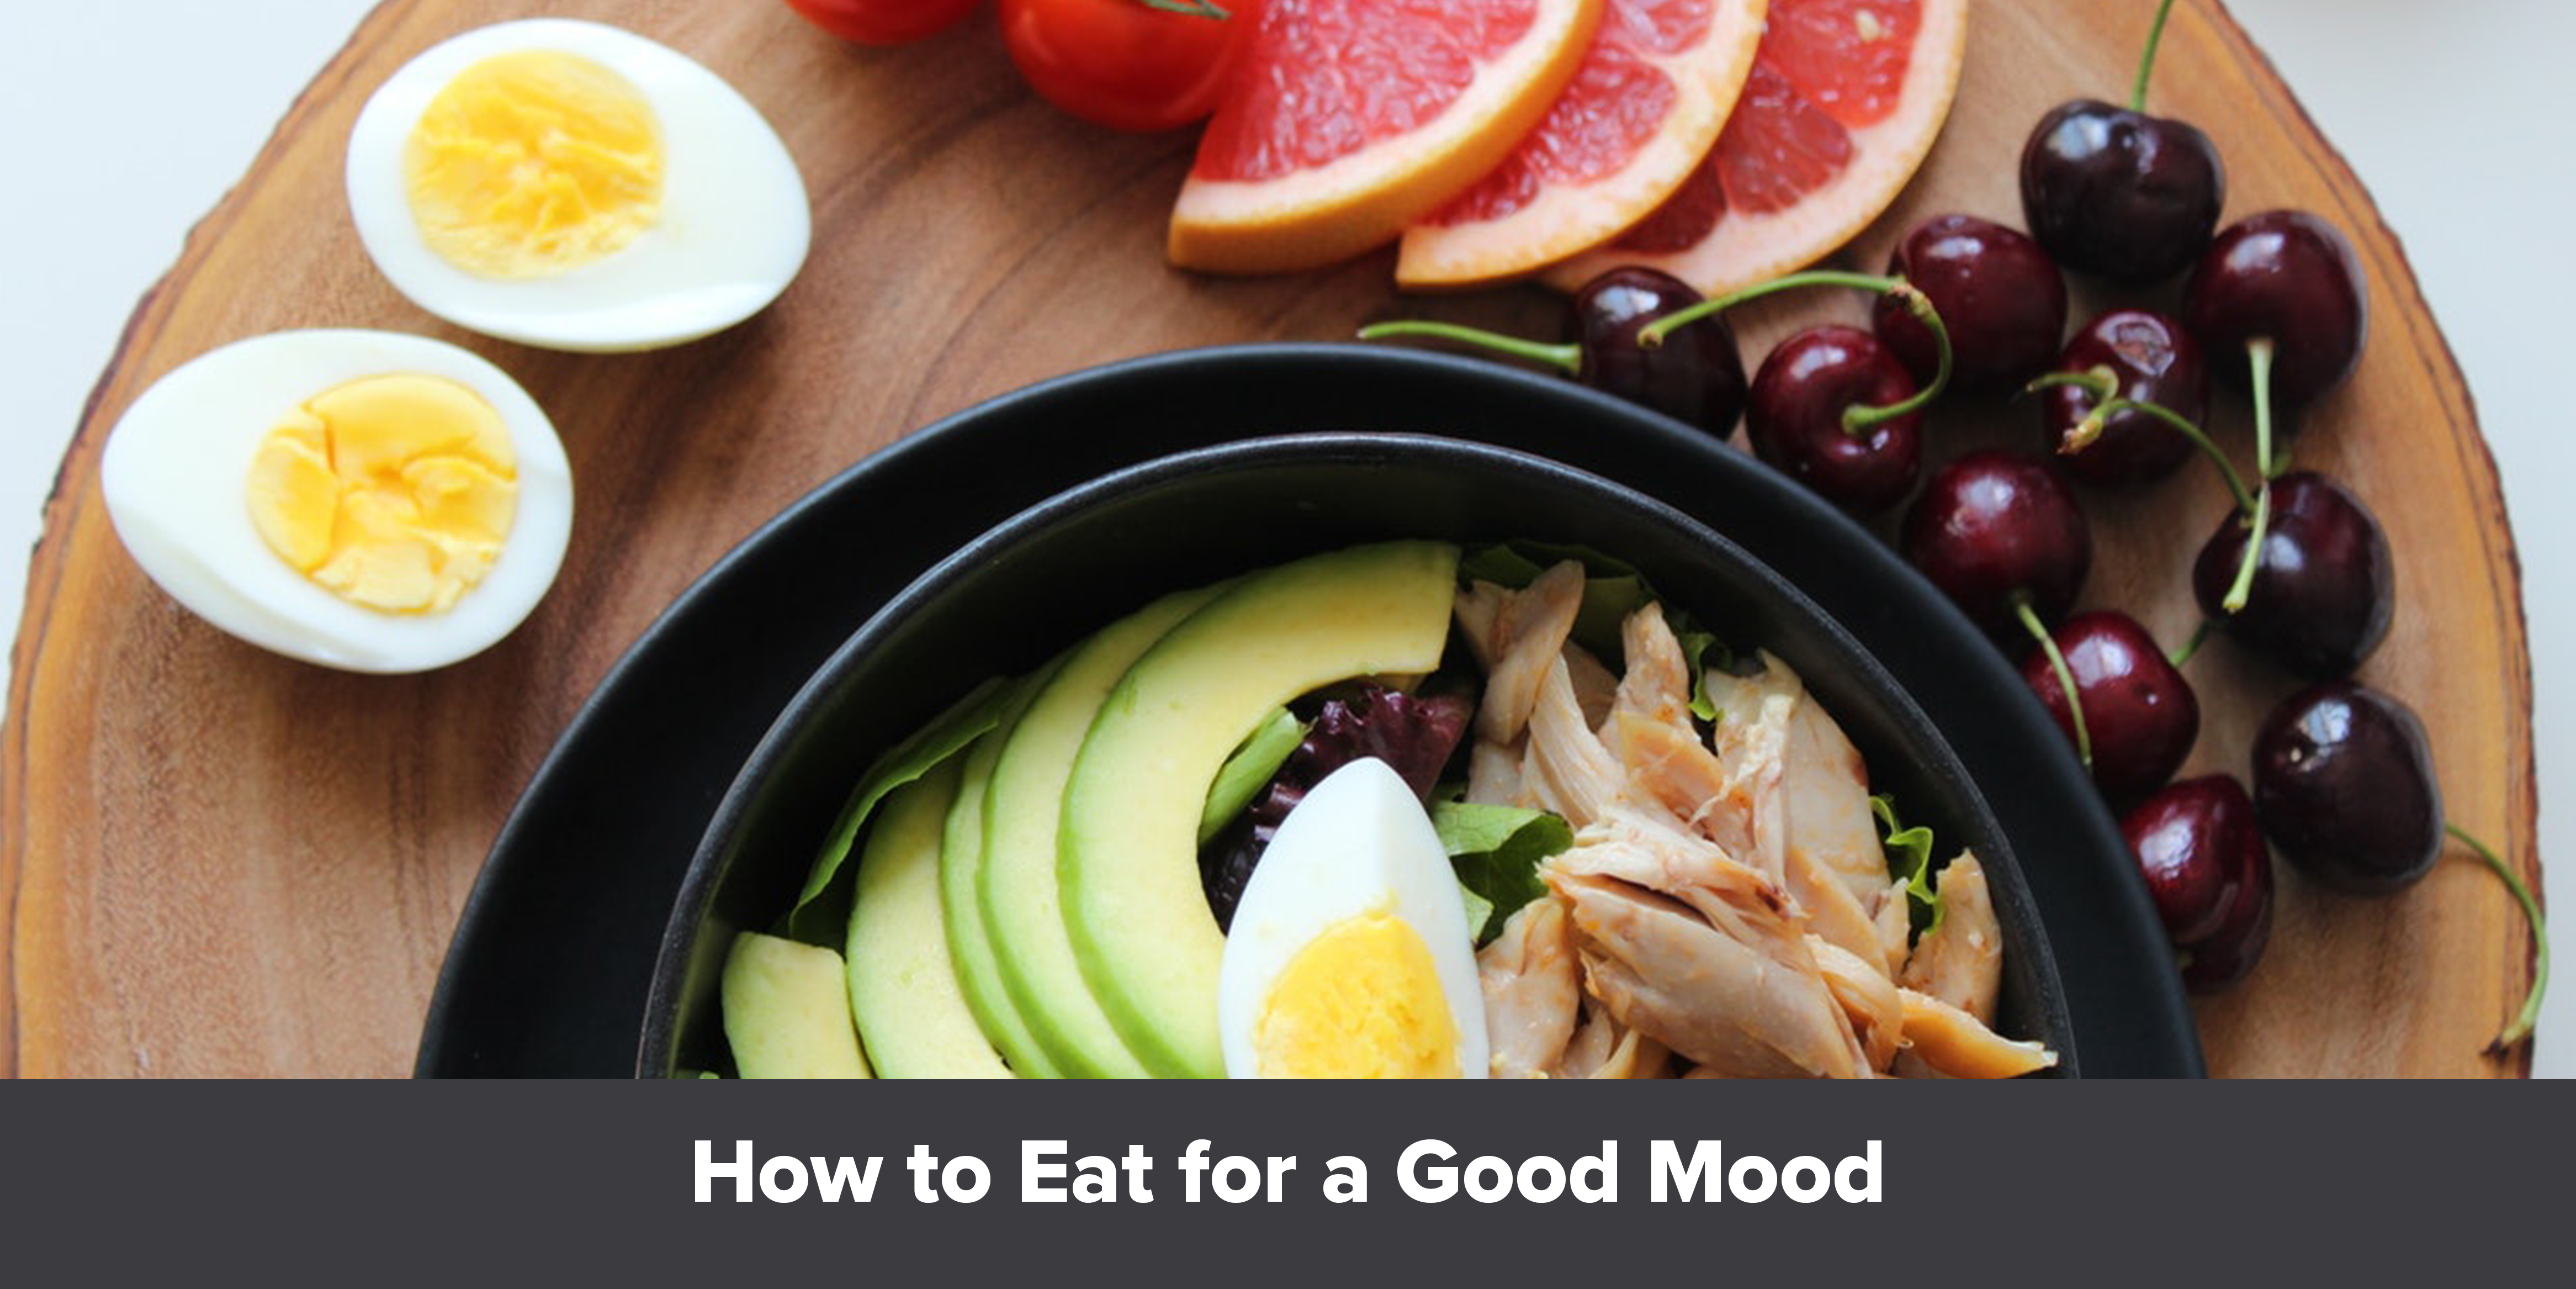 How to Eat for a Good Mood